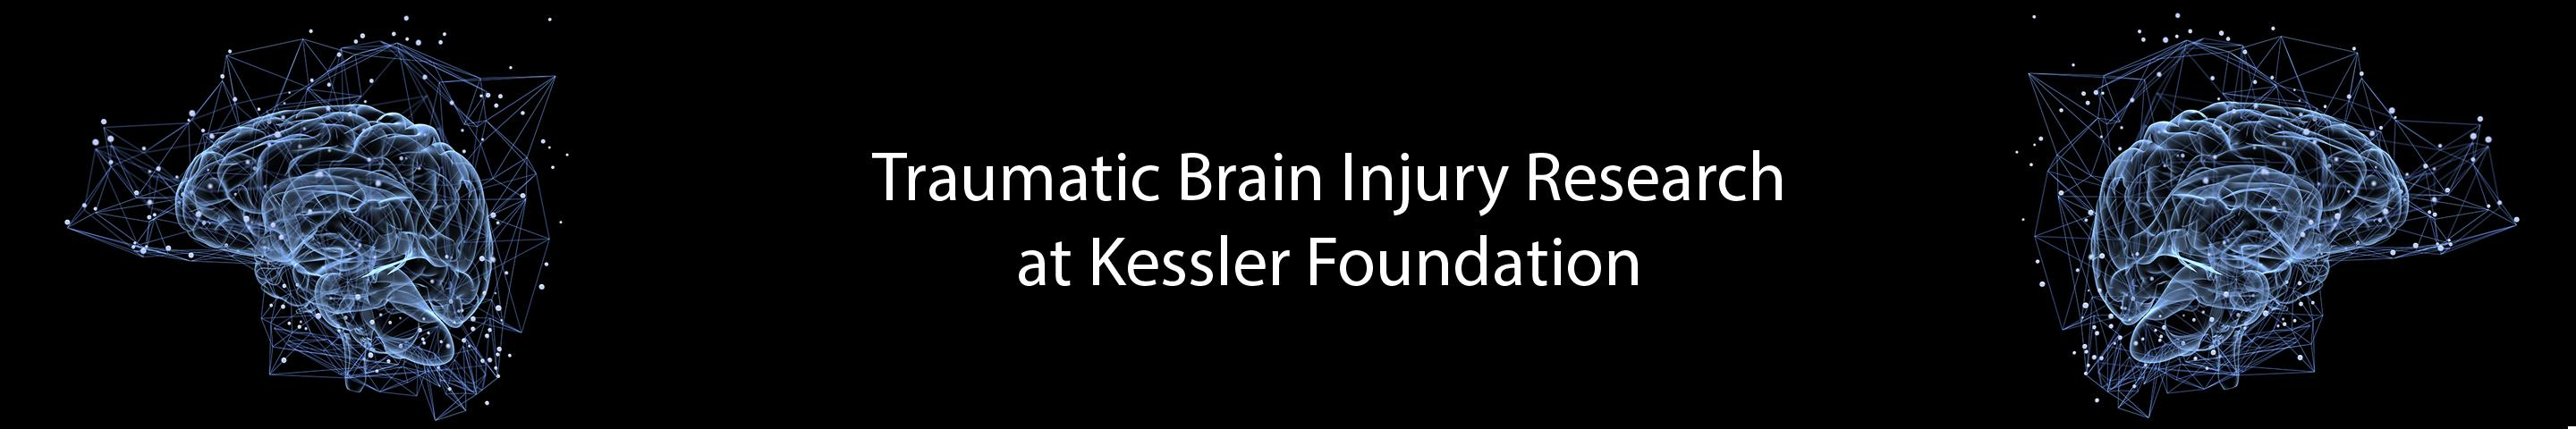 TBI Research at Kessler Foundation